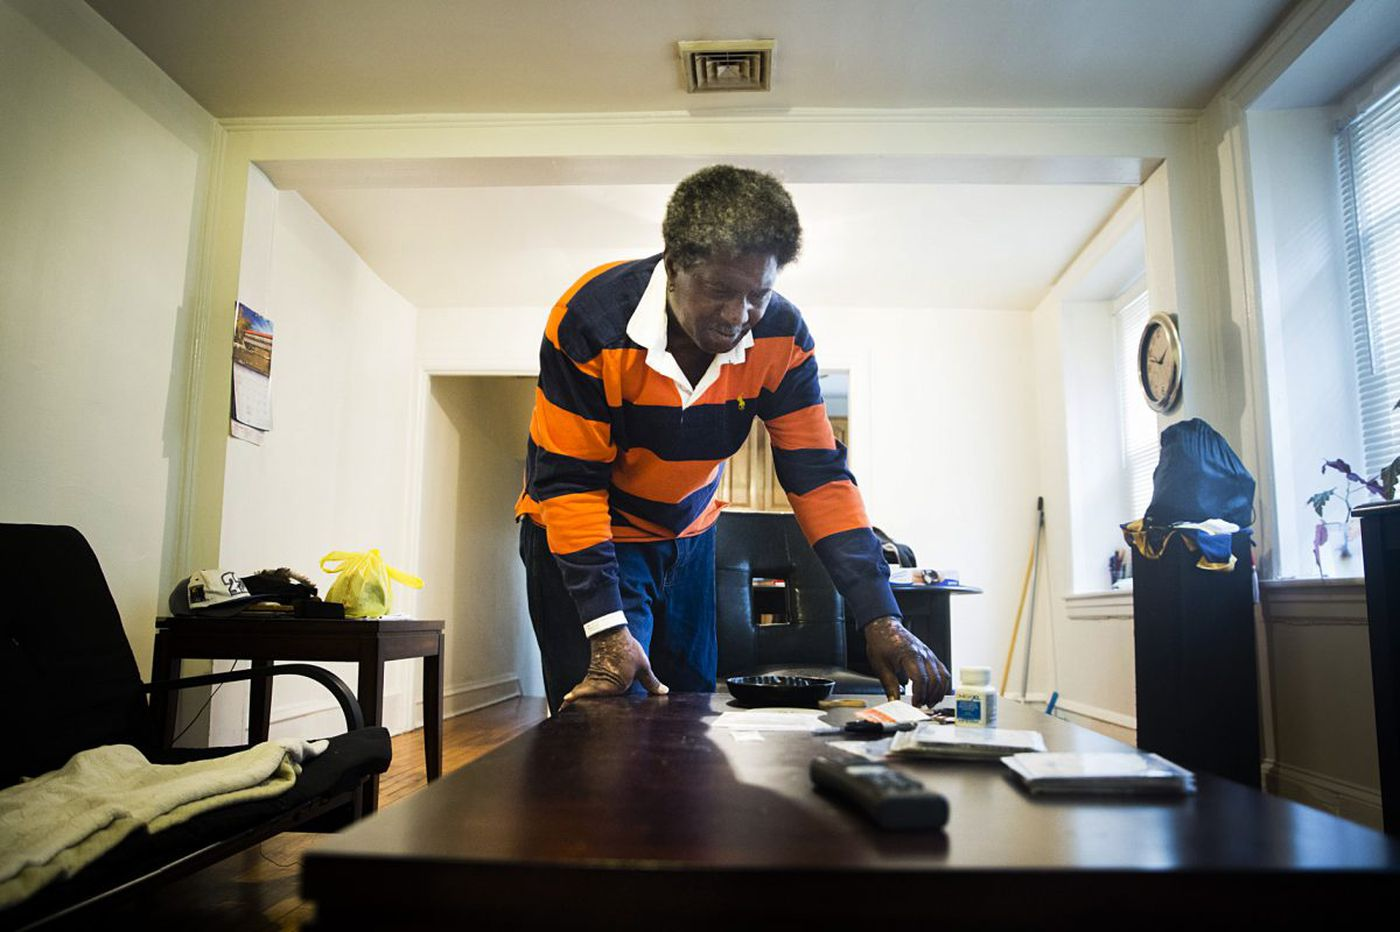 Philadelphia clears its heroin camps this week. This housing program could be a key